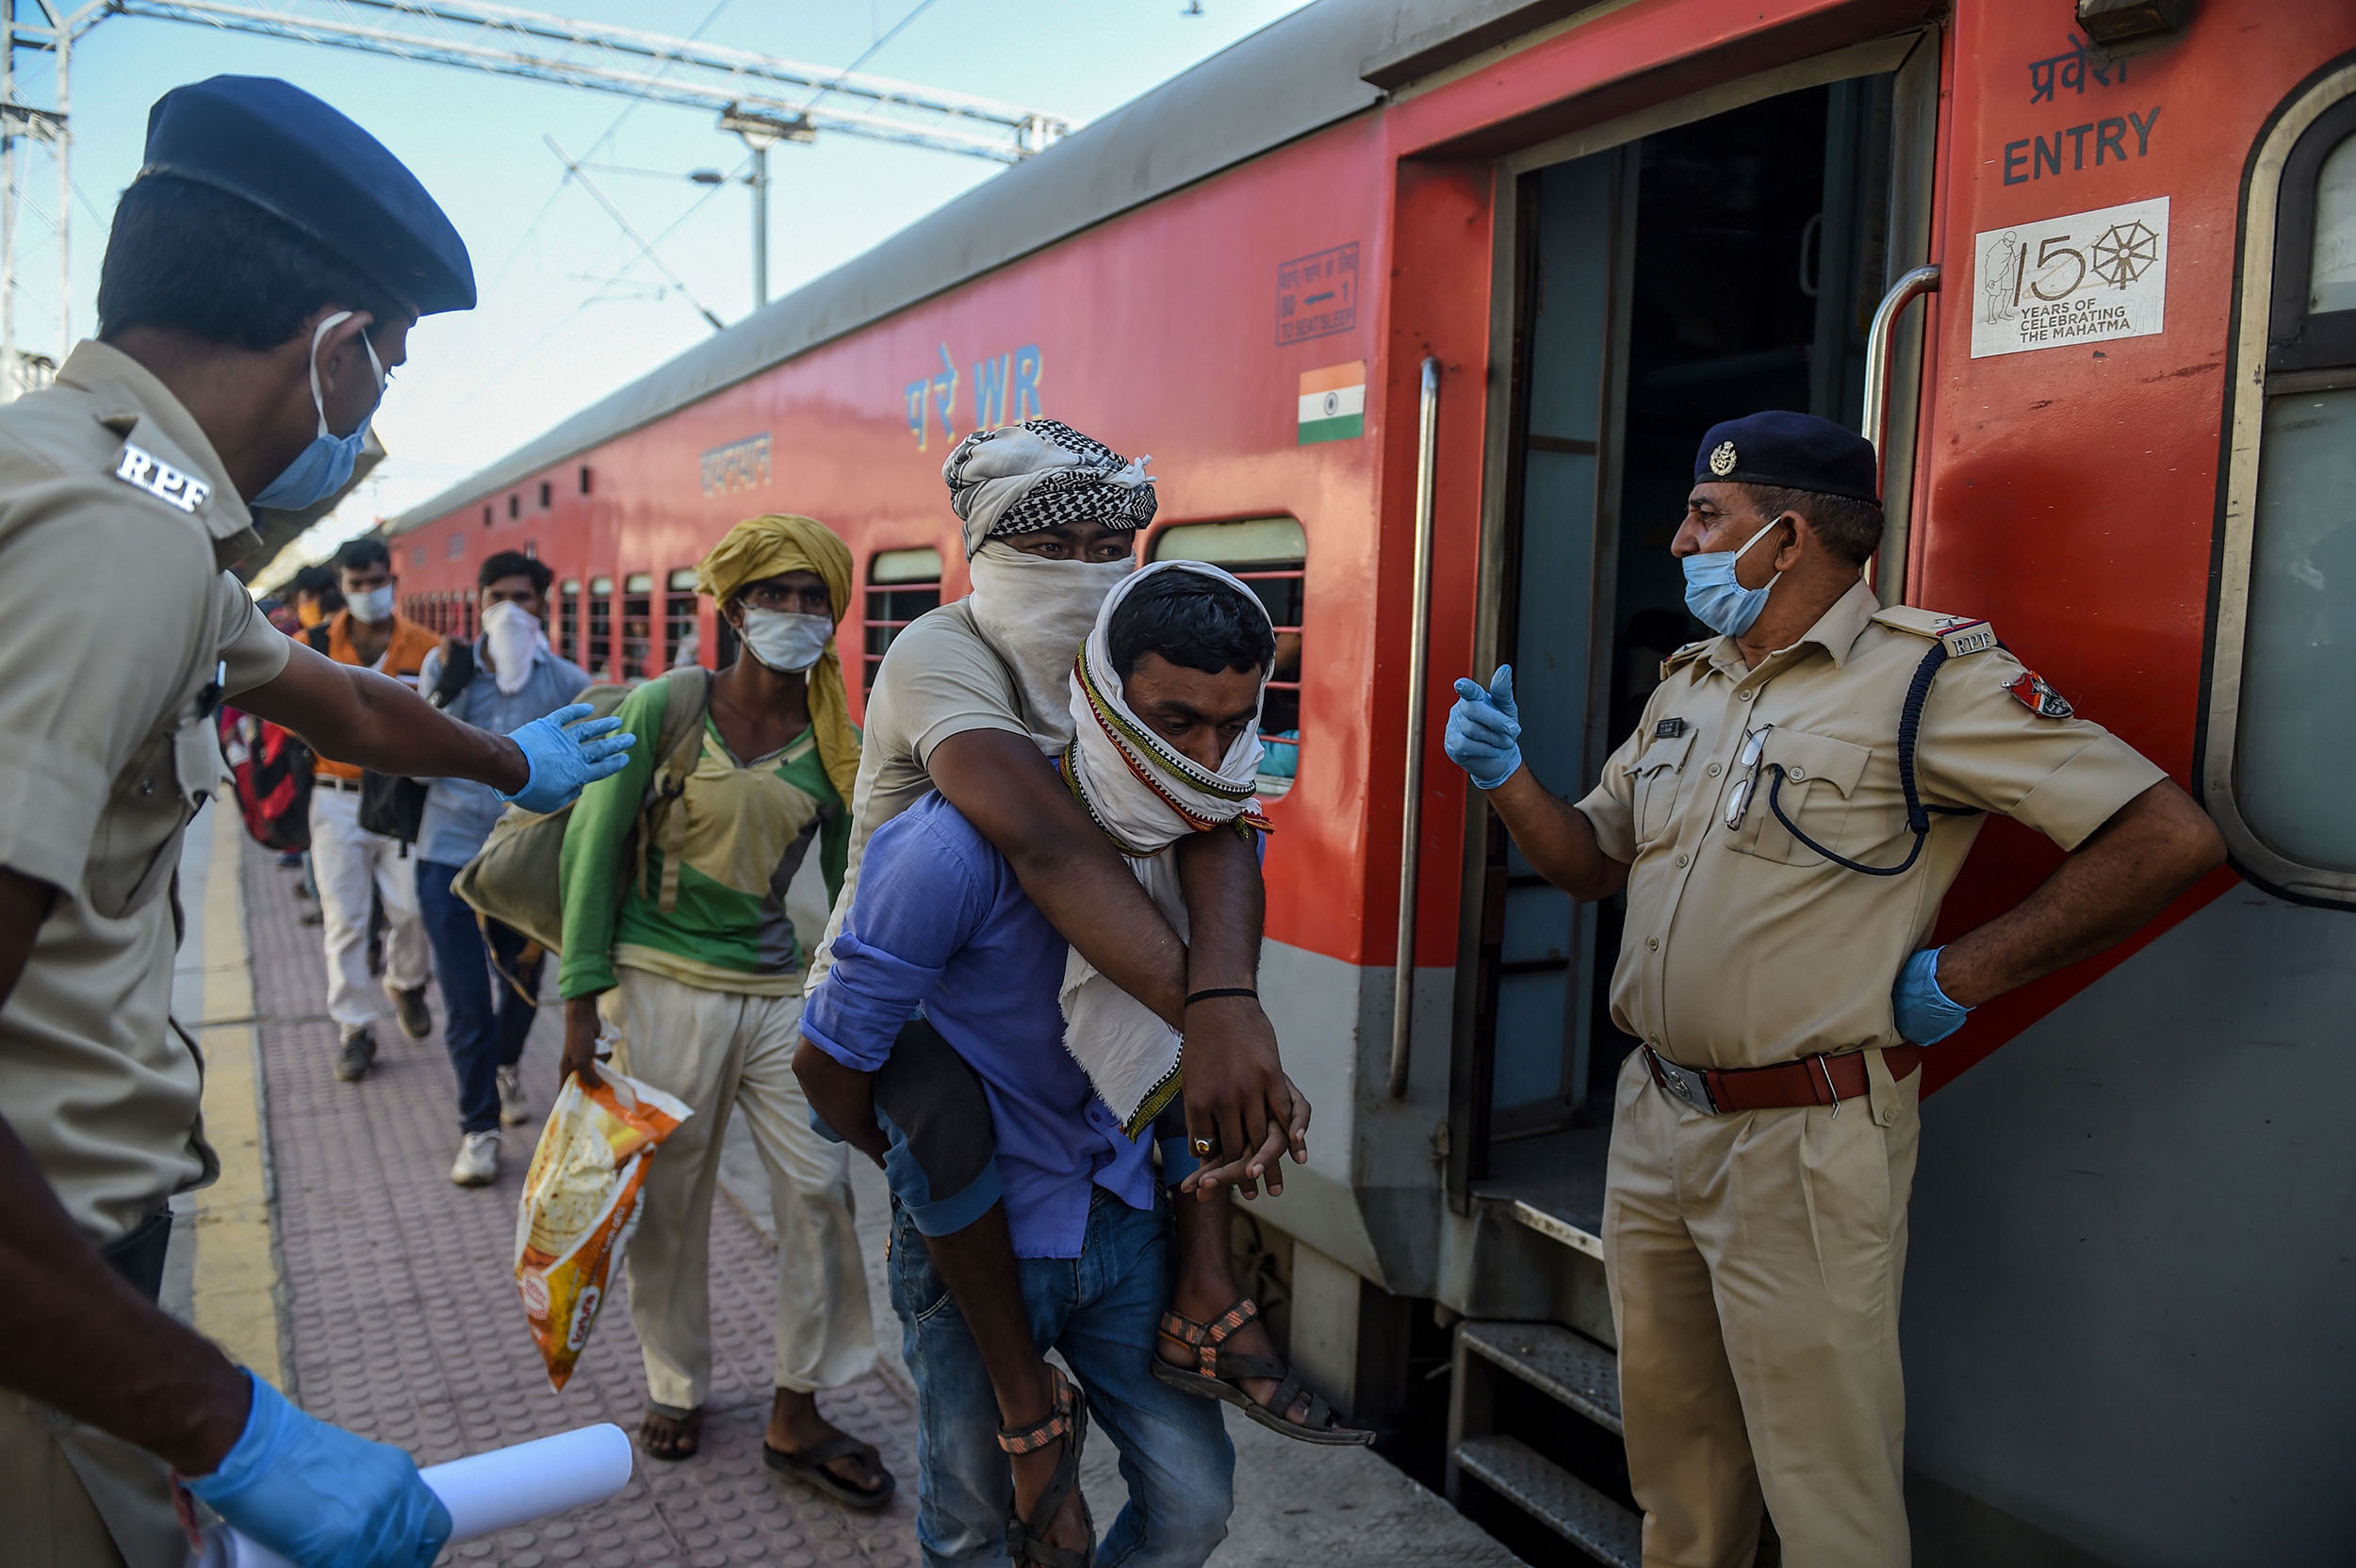 A migrant worker lifts his disabled brother, center, as they board a special train at Sabarmati Railway Station near Ahmedabad, India, on May 2.